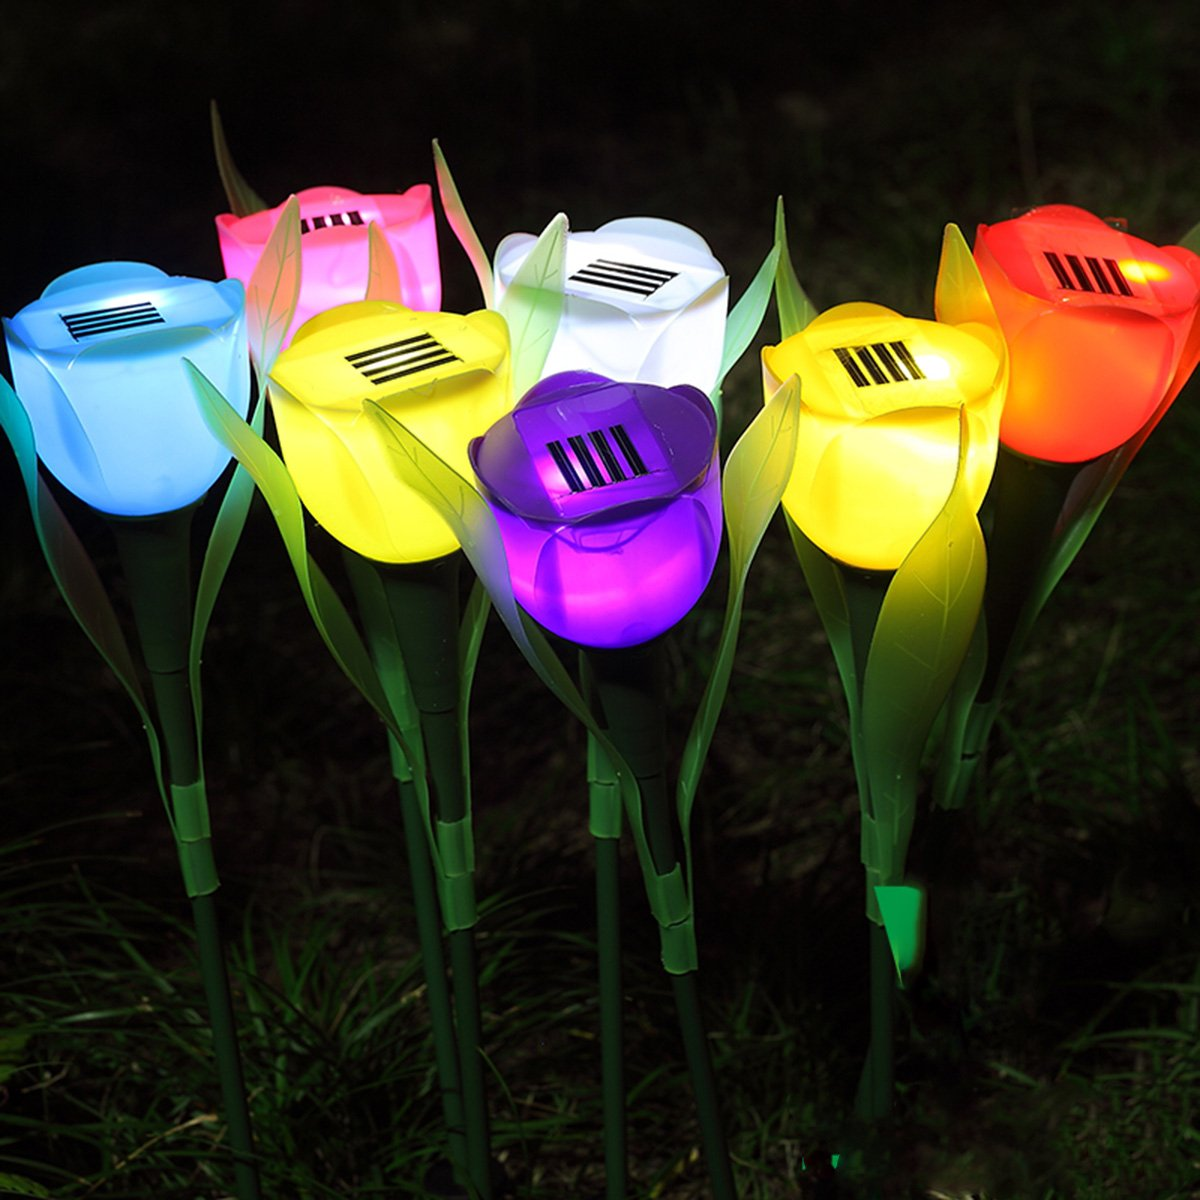 Solar Power Light Sensor LED Tulip Garden Stake Flowers Decorative Patio Lawn Lamp Path Landscape in-ground Light up White One Size